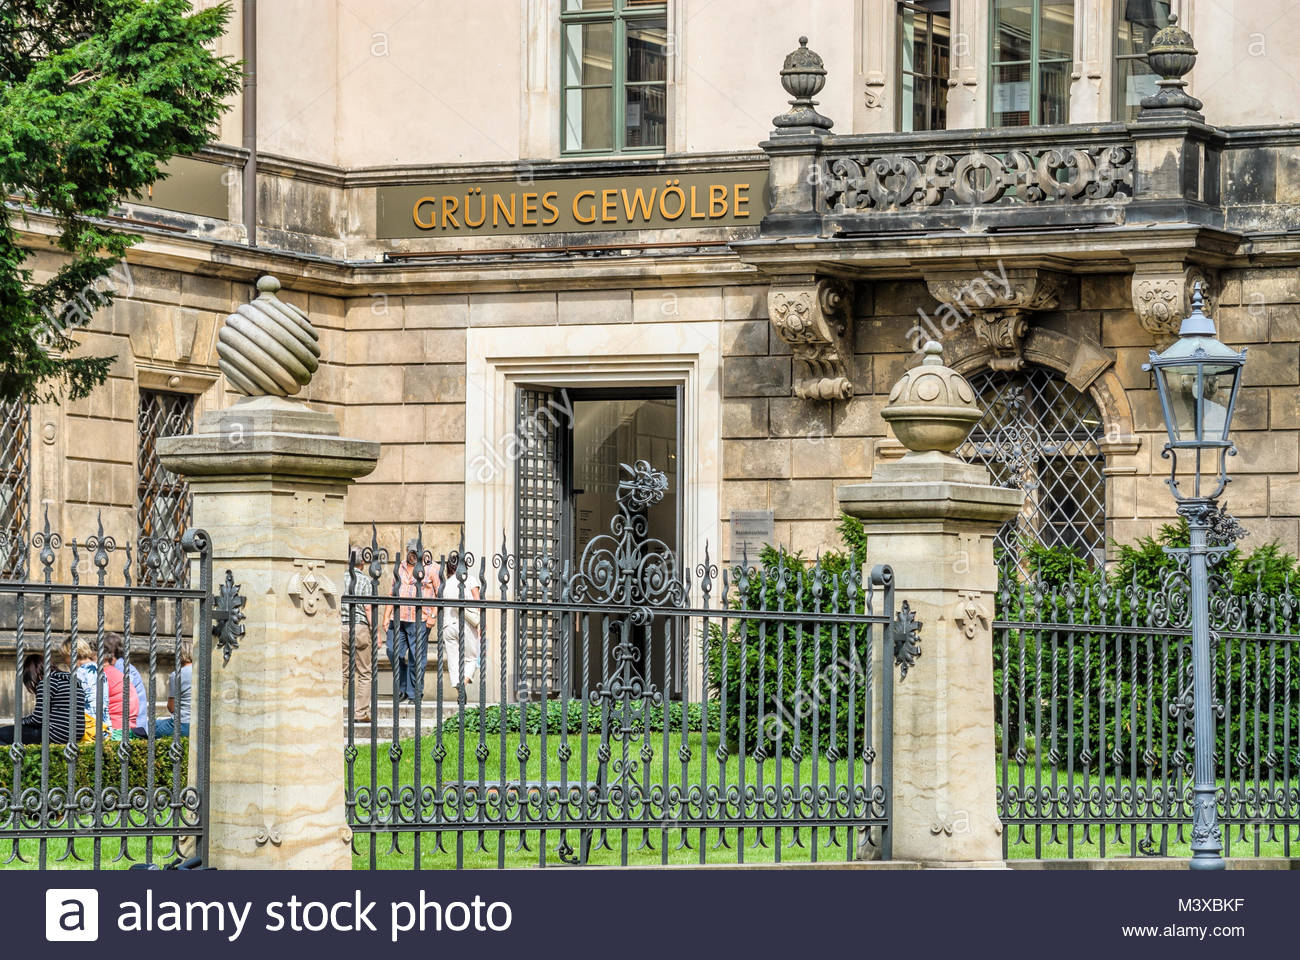 Grünes Gewölbe (Green Vault) in Dresden, Germany is a museum that contains the largest collection of treasures - Stock Image